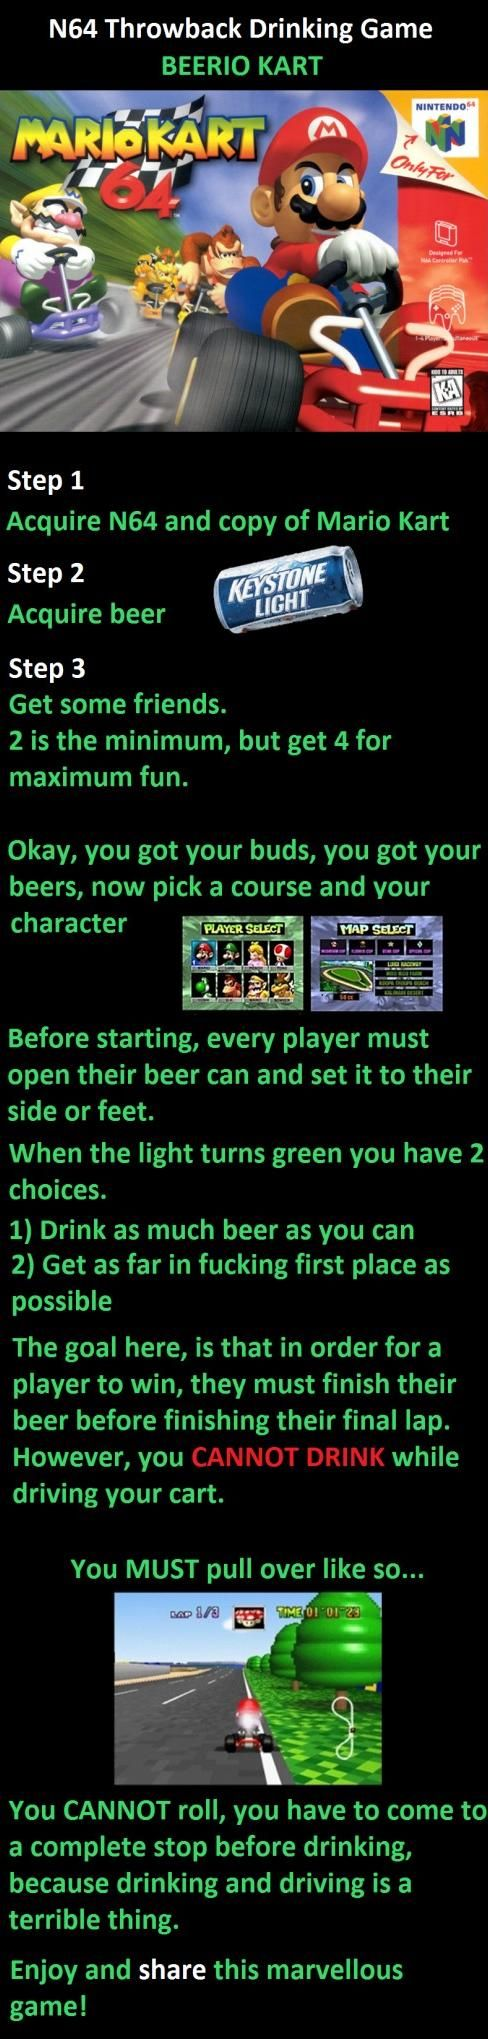 Mario Kart Drink and Drive game